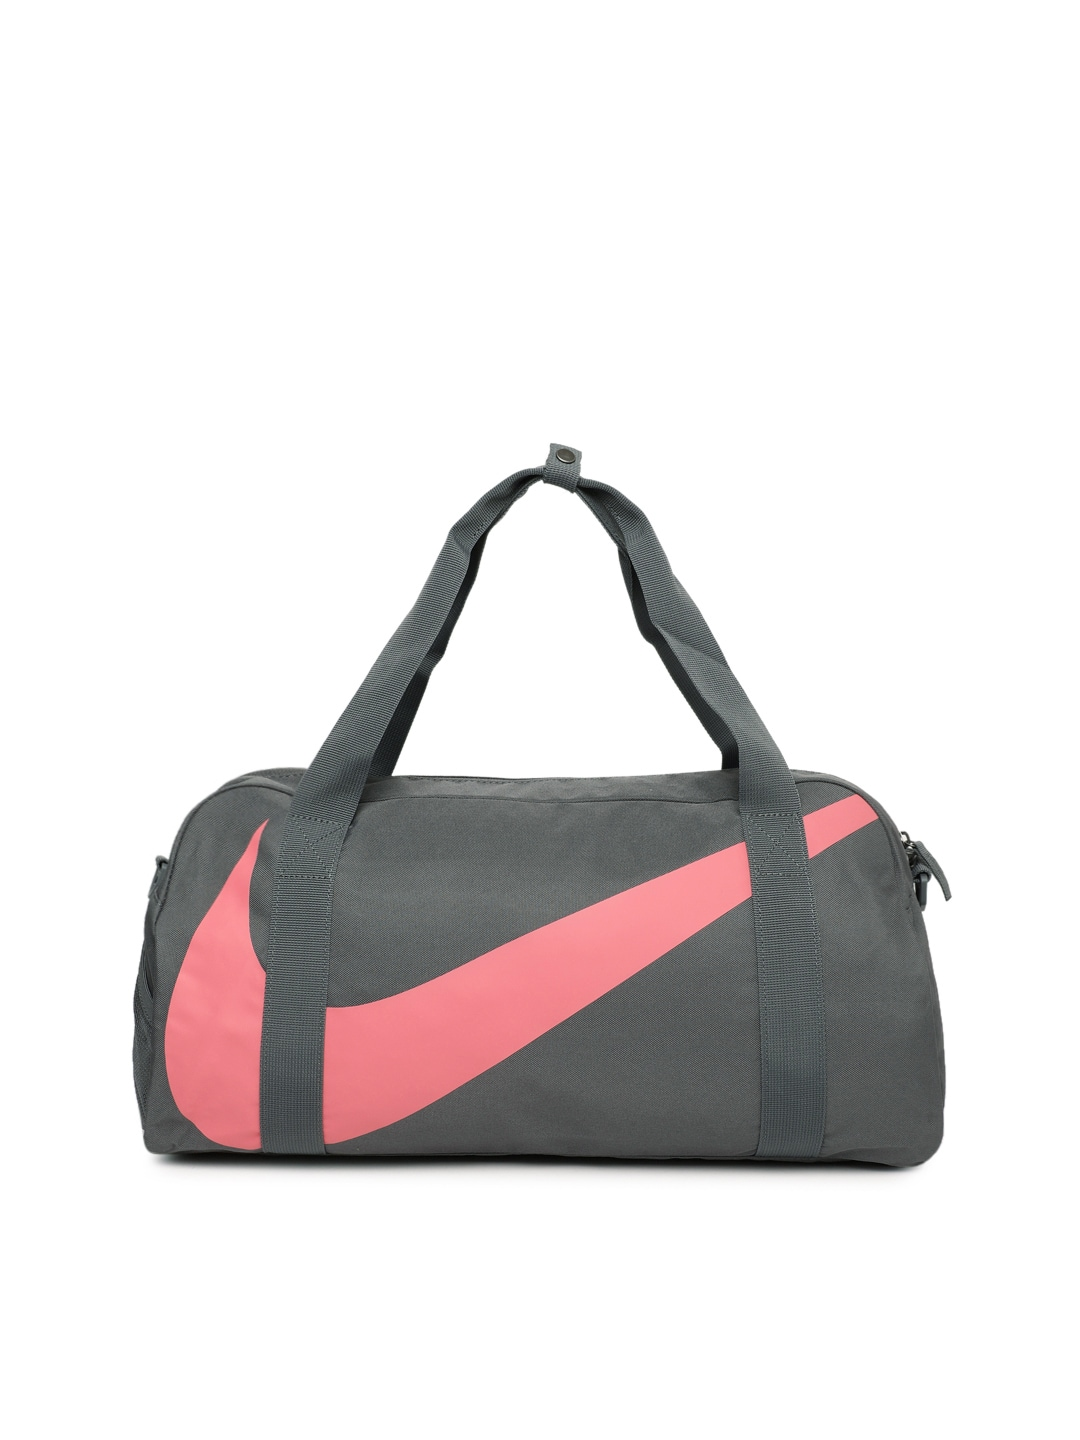 Nike Unisex Grey   Pink Gym Club Duffel Bag 91cd634ed2a2c